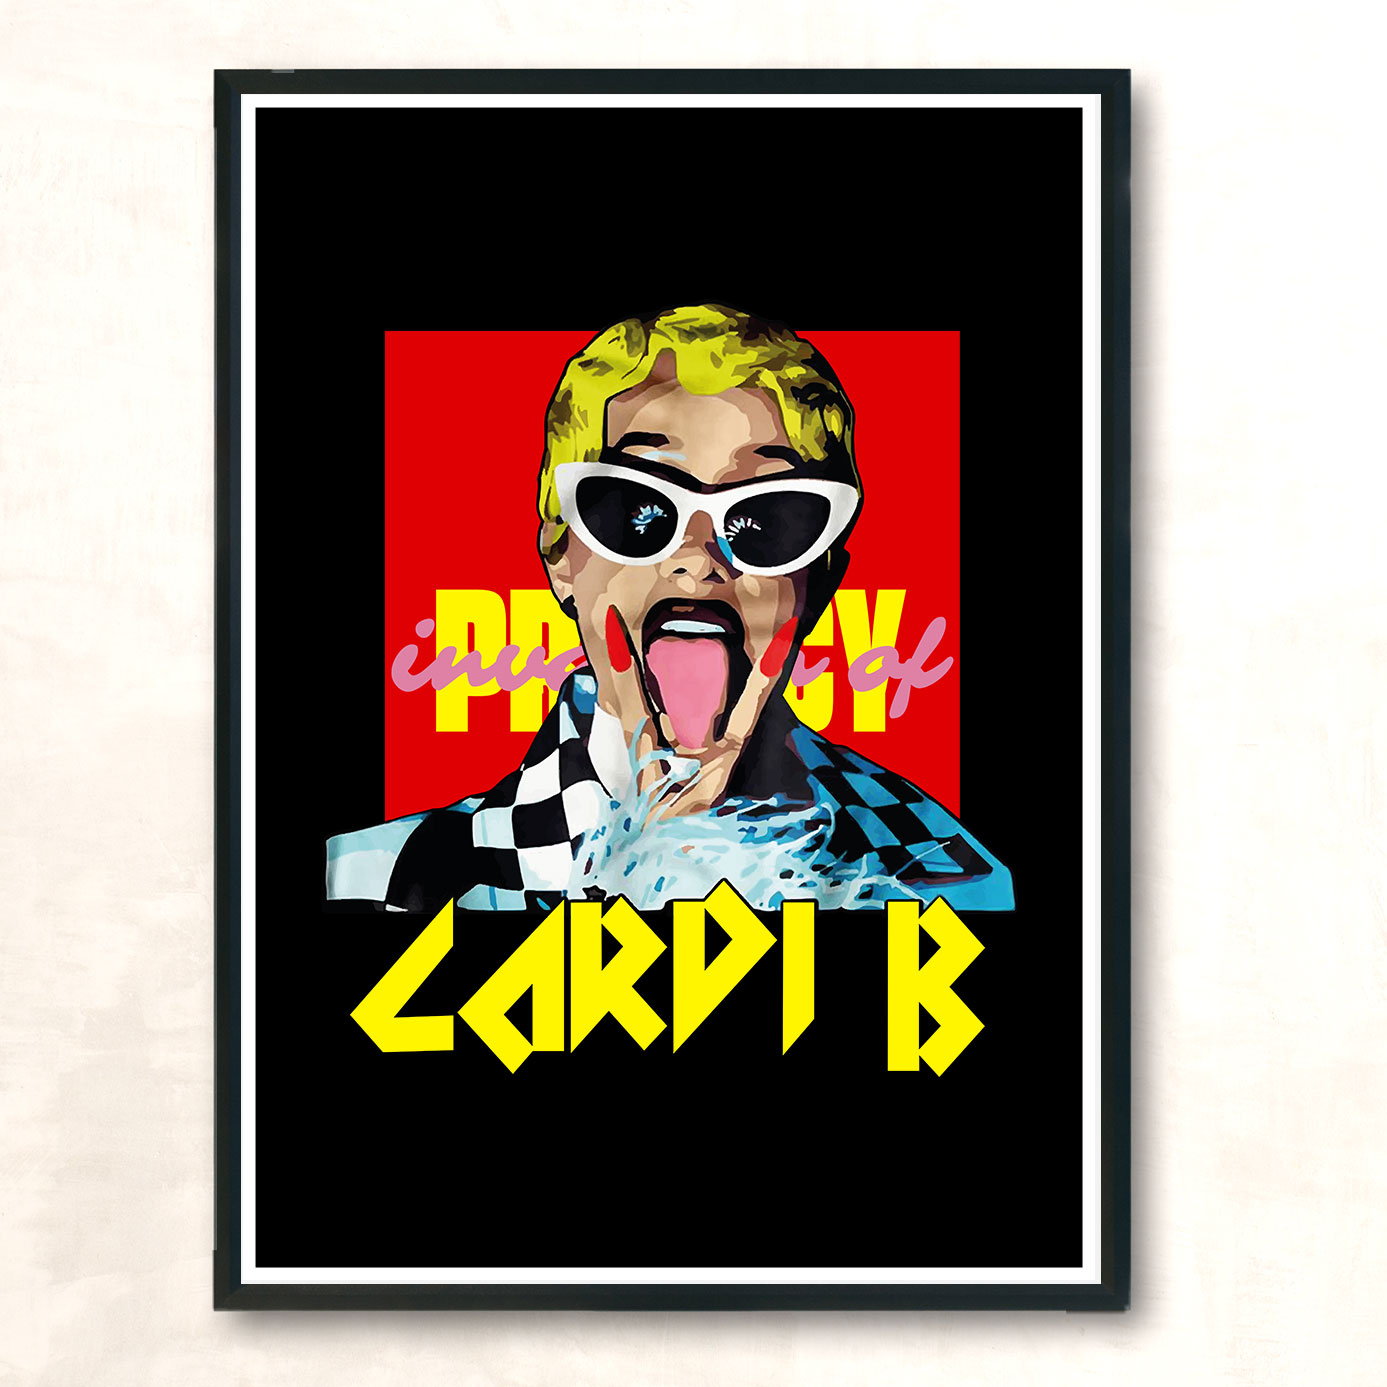 privacy cardi b vintage wall poster